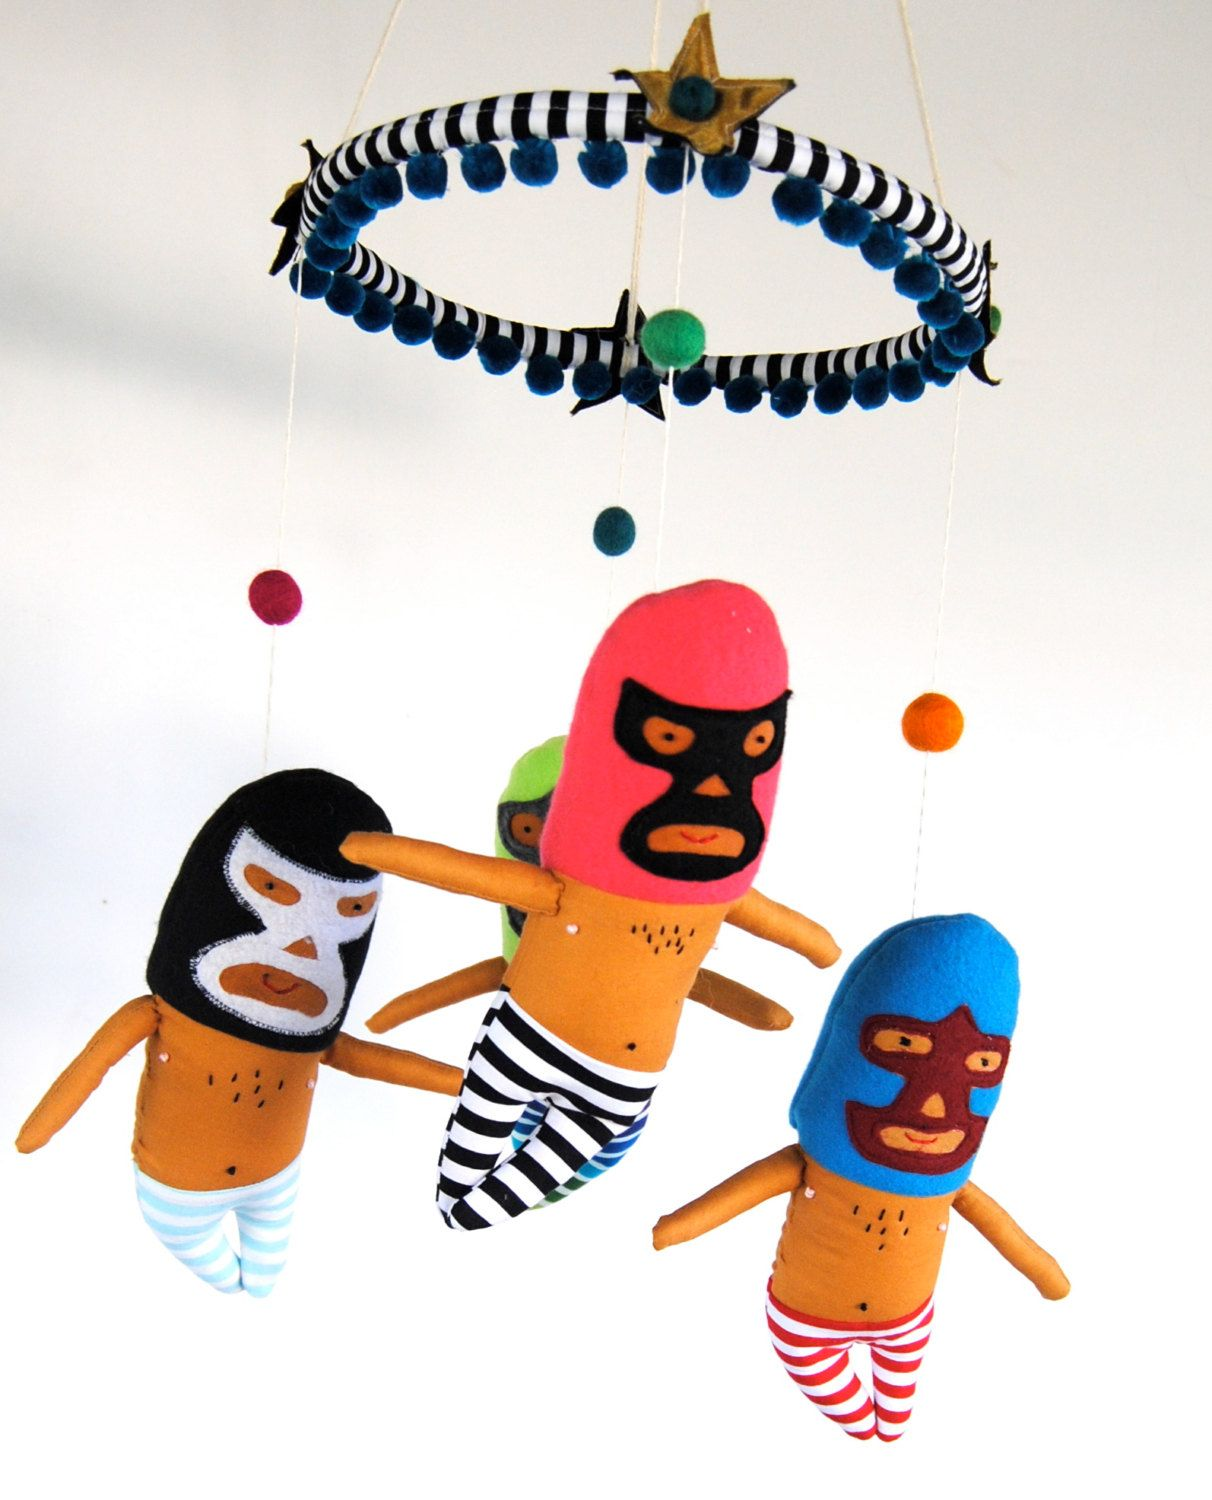 Juguetes Lucha Libre Luchador Baby Mobile For A Colorful Modern Nursery